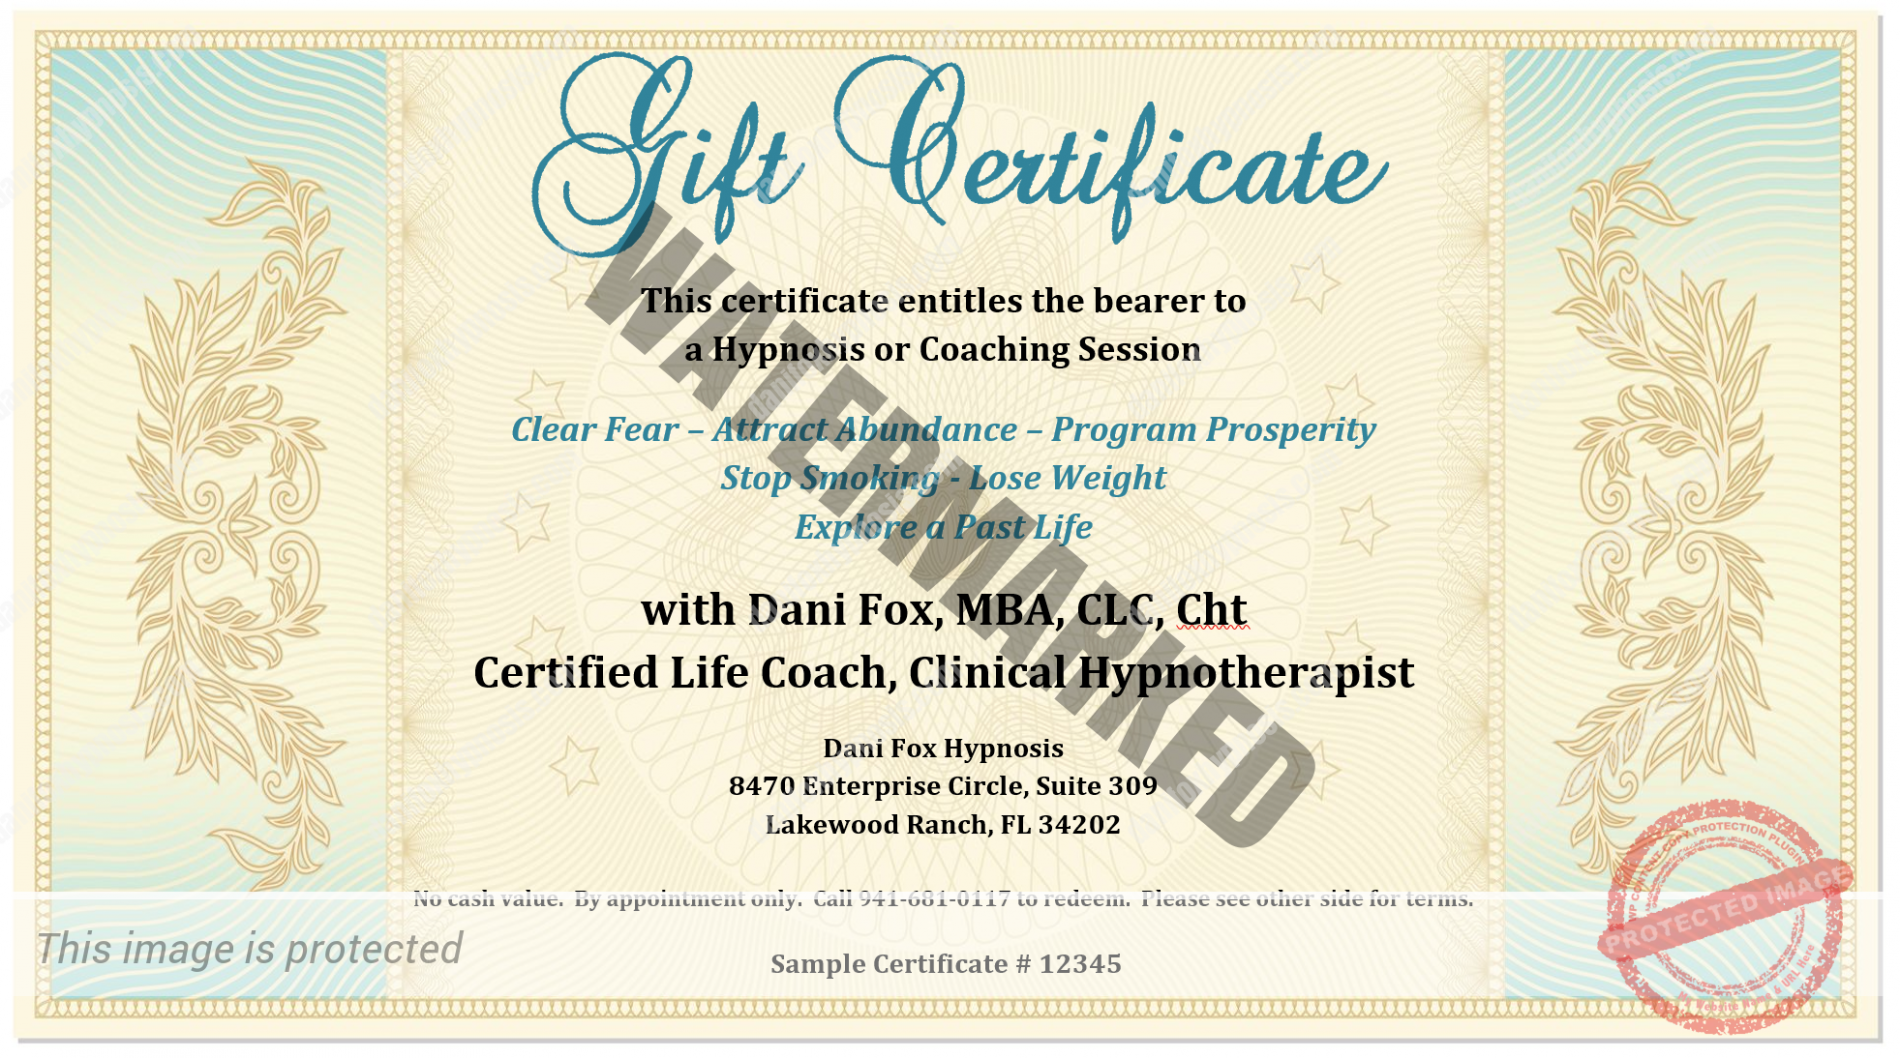 Gift certificate dani fox hypnosis for This certificate entitles you to